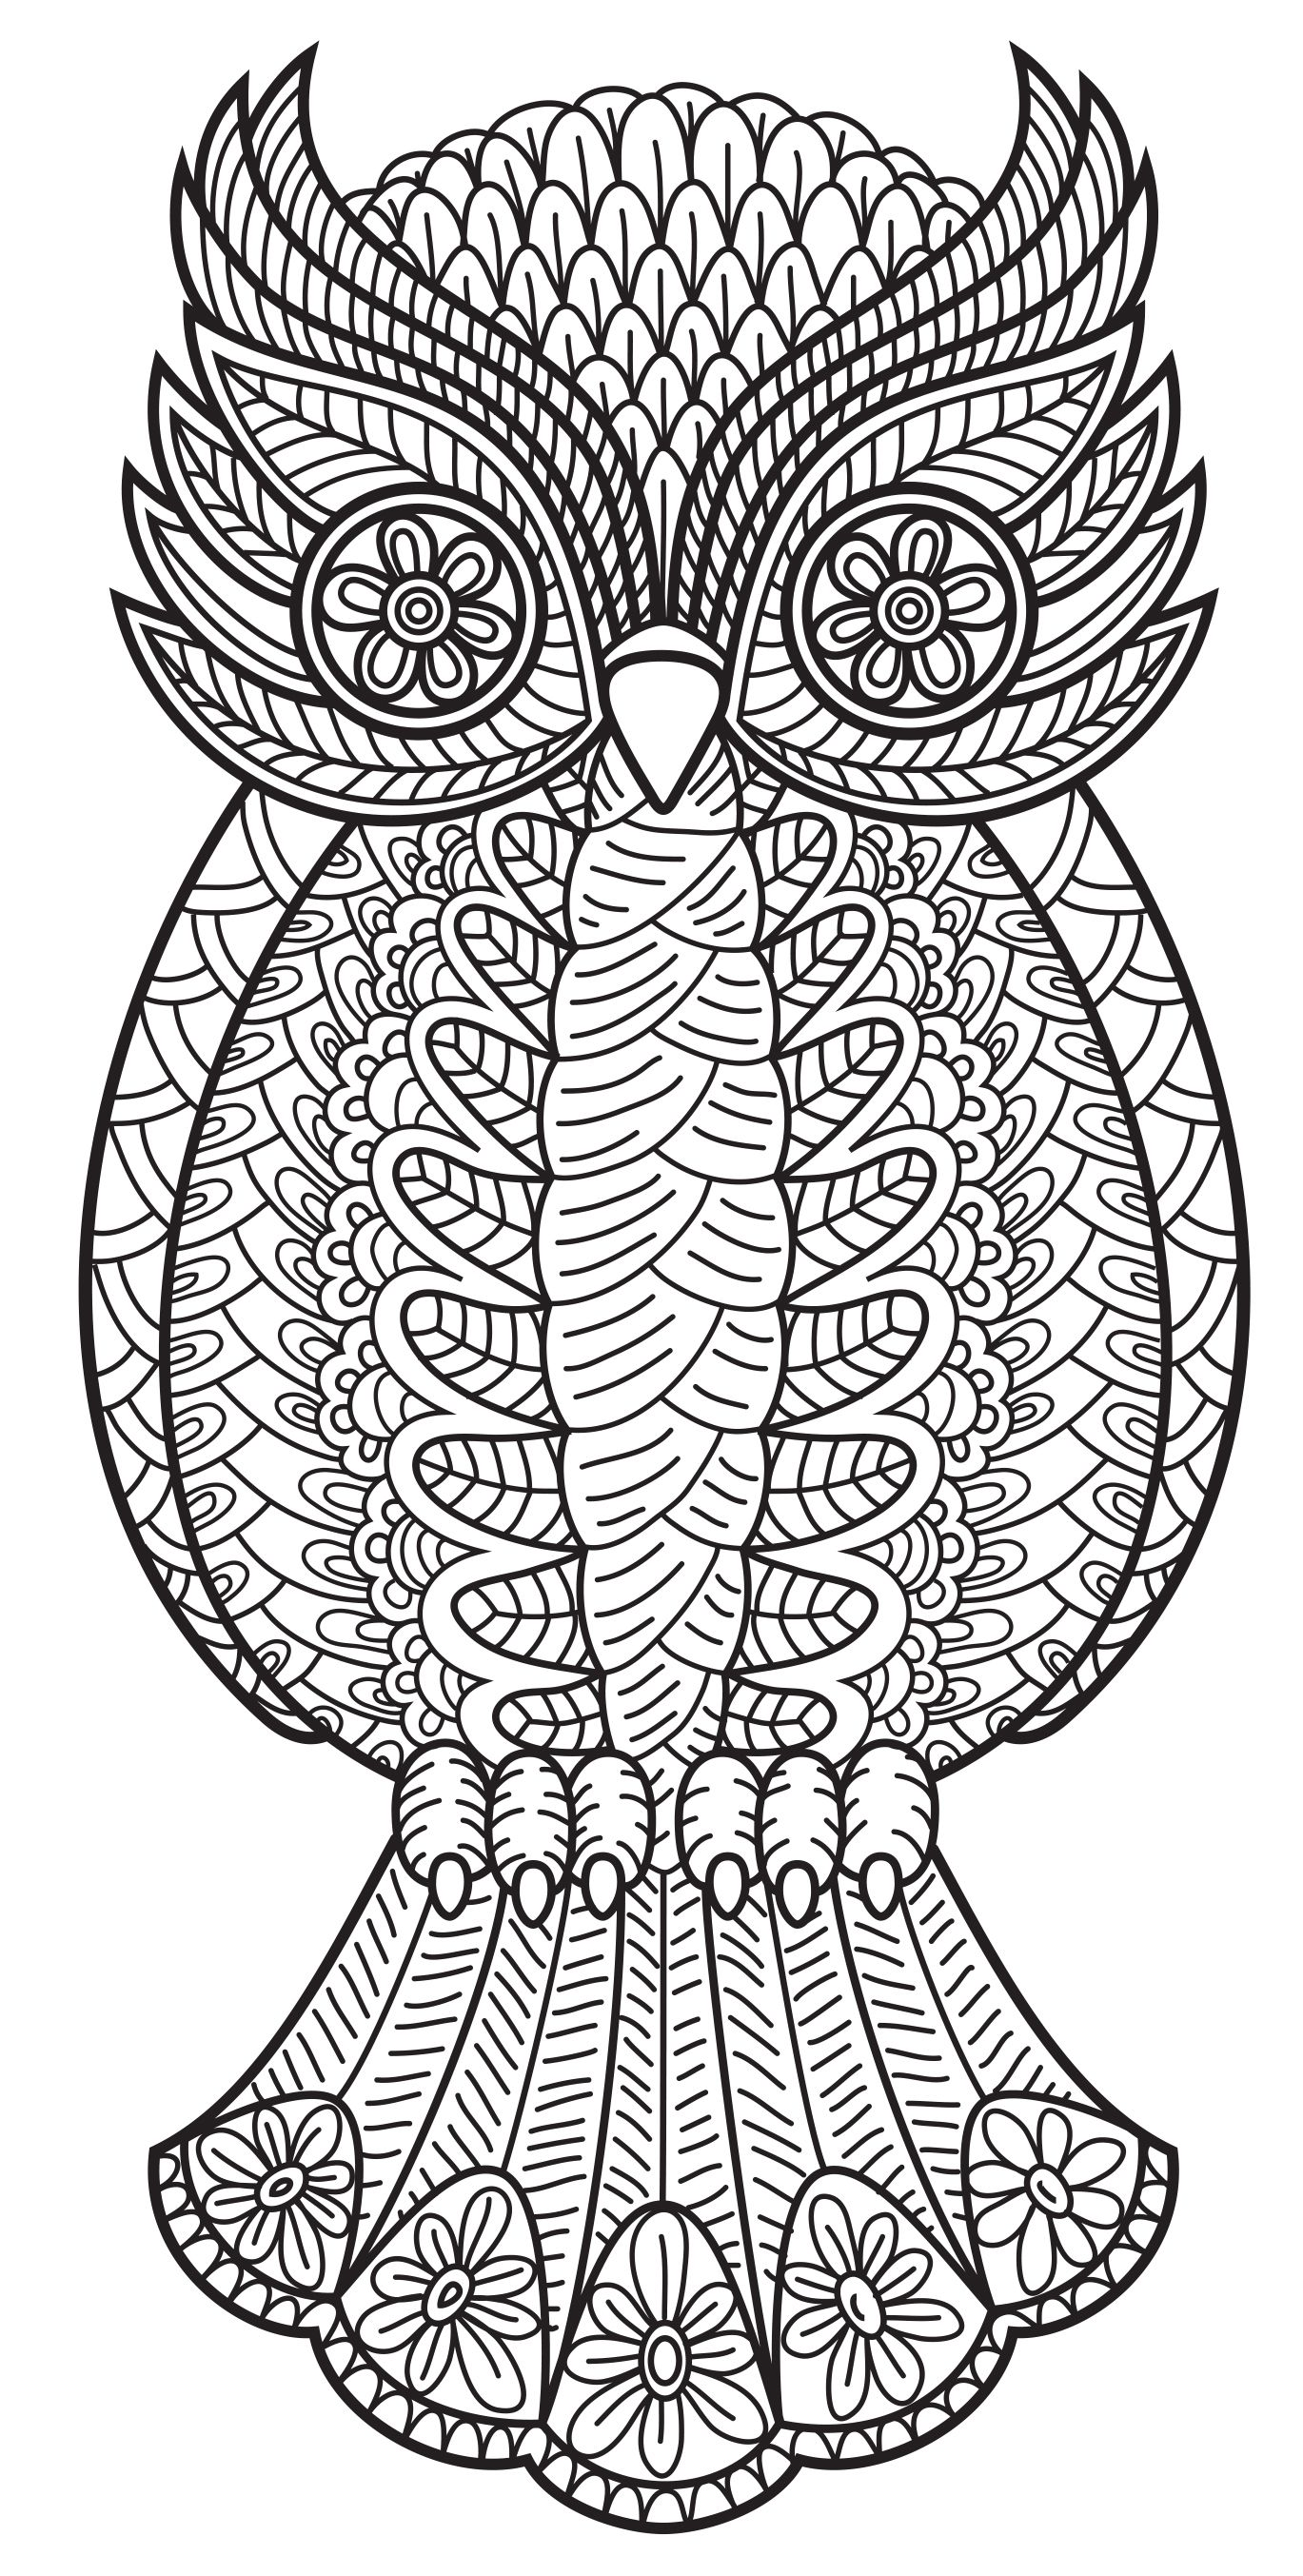 An owl from Patterns Coloring Book Vol 3 Coloring Pages Owls